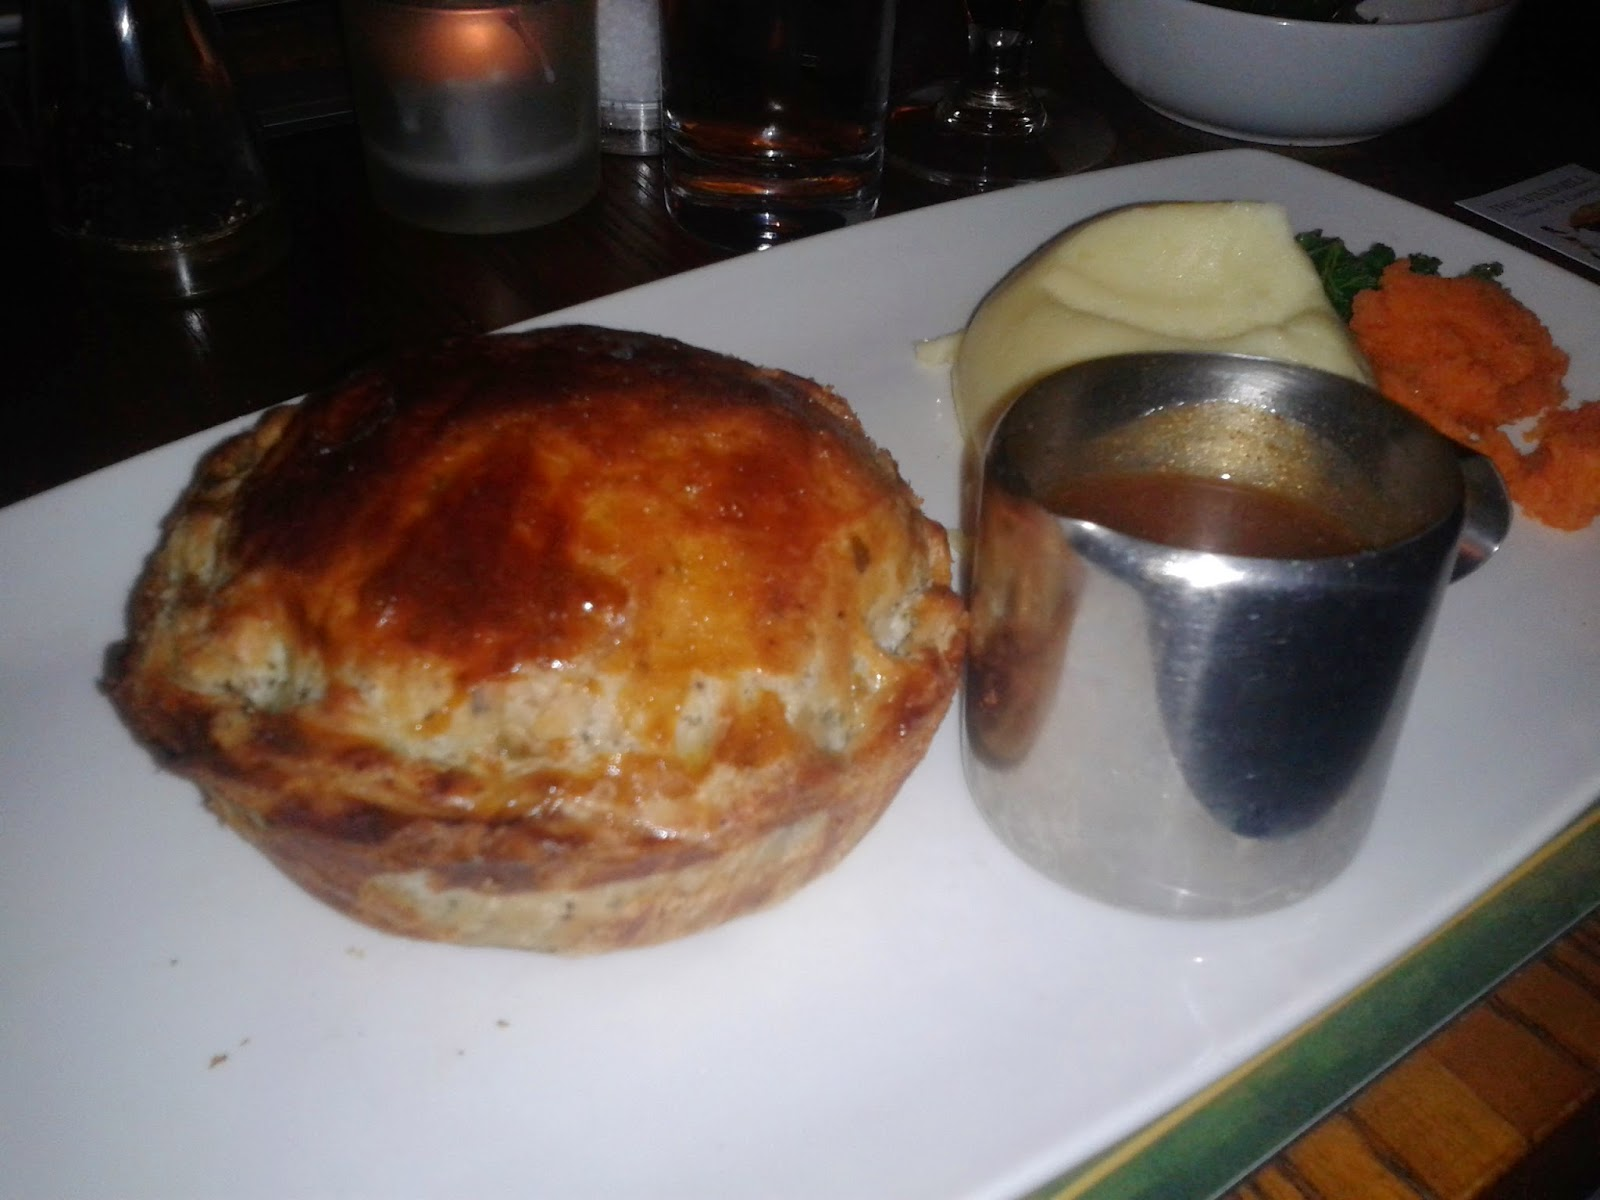 Windmill Mayfair Steak & Kidney Pie